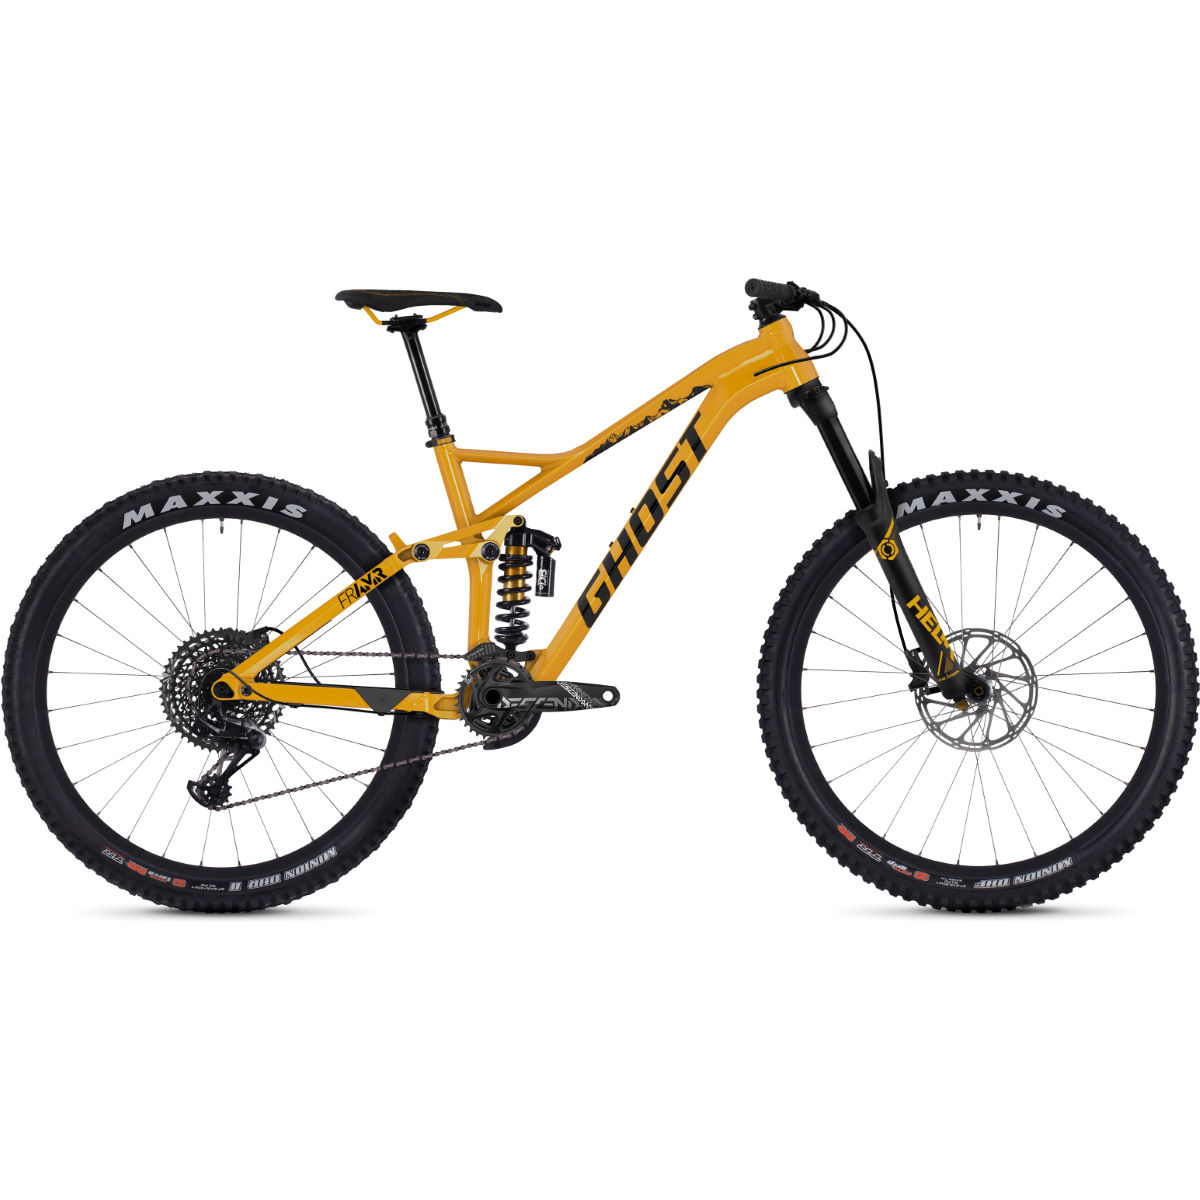 Ghost FR AMR 8.7 (2019) Full Suspension Bike - Bicicletas de MTB de doble suspensión